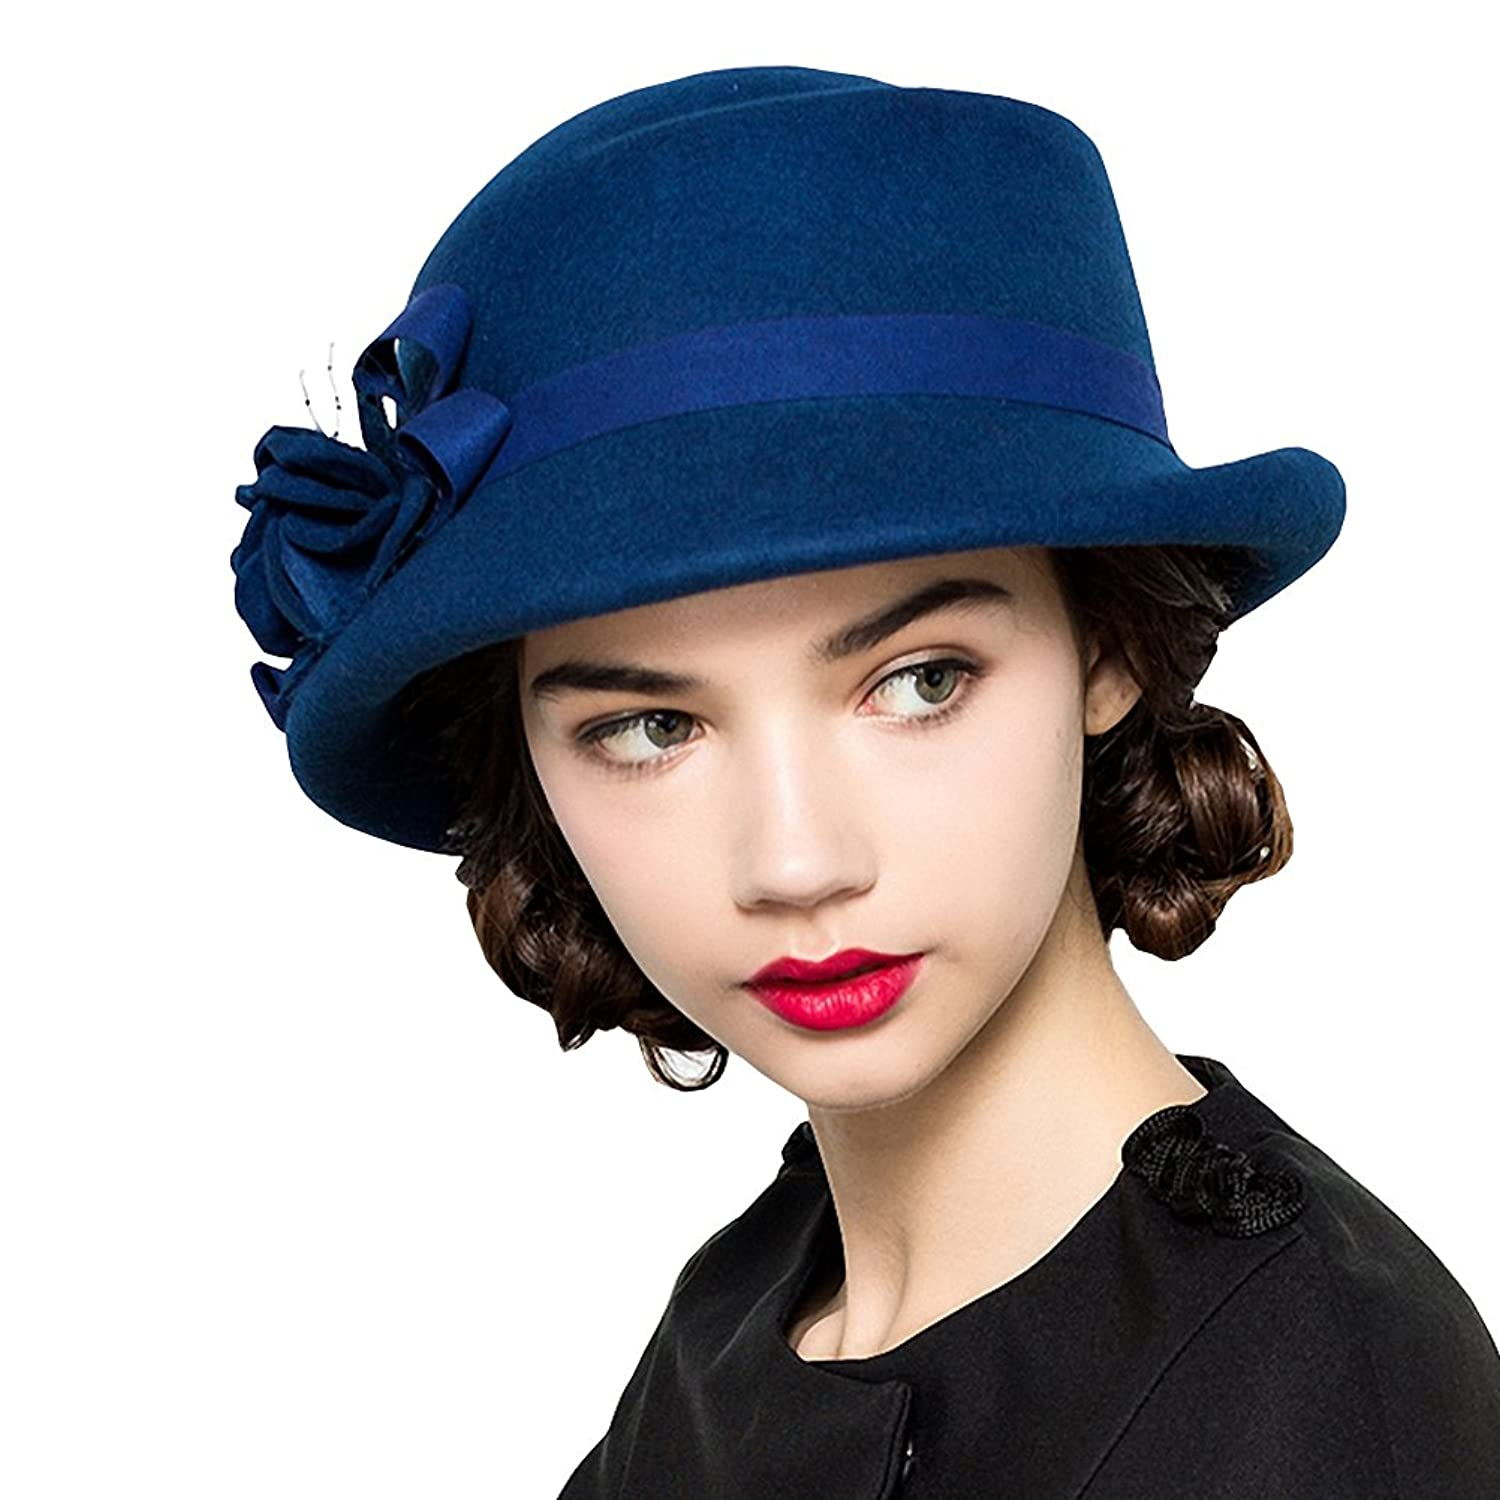 1920s Accessories | Great Gatsby Accessories Guide Maitose® Womens Wool Felt Flowers Church Bowler Hats $33.00 AT vintagedancer.com